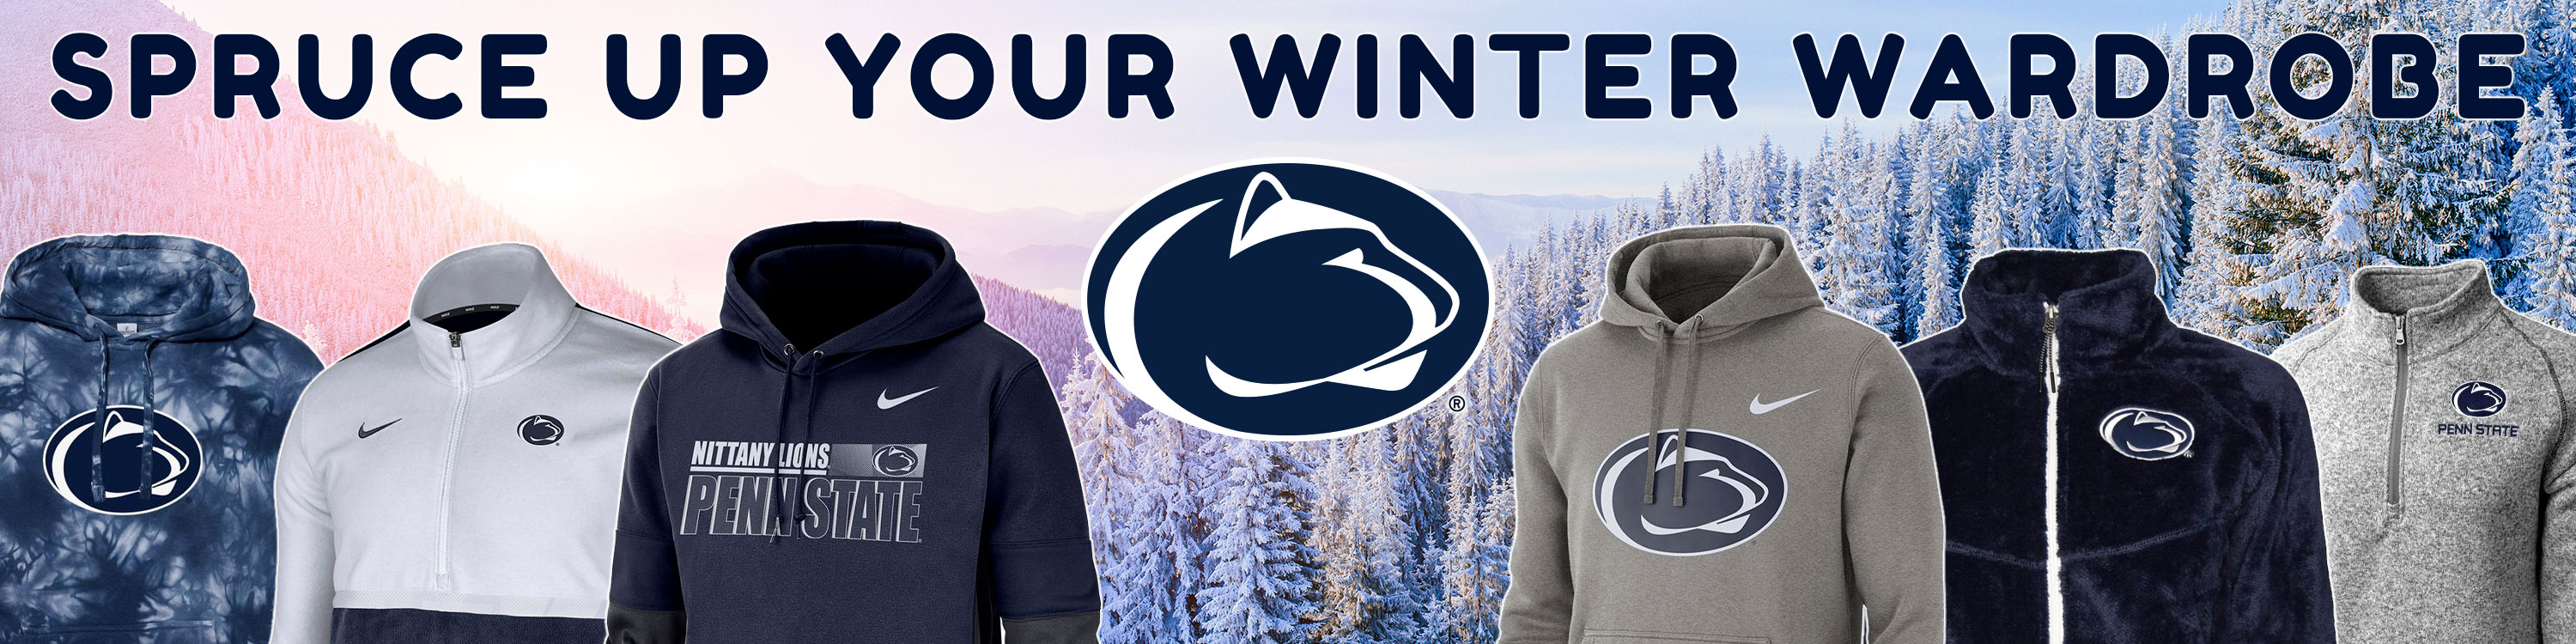 Click to Shop Our Penn State Jacket